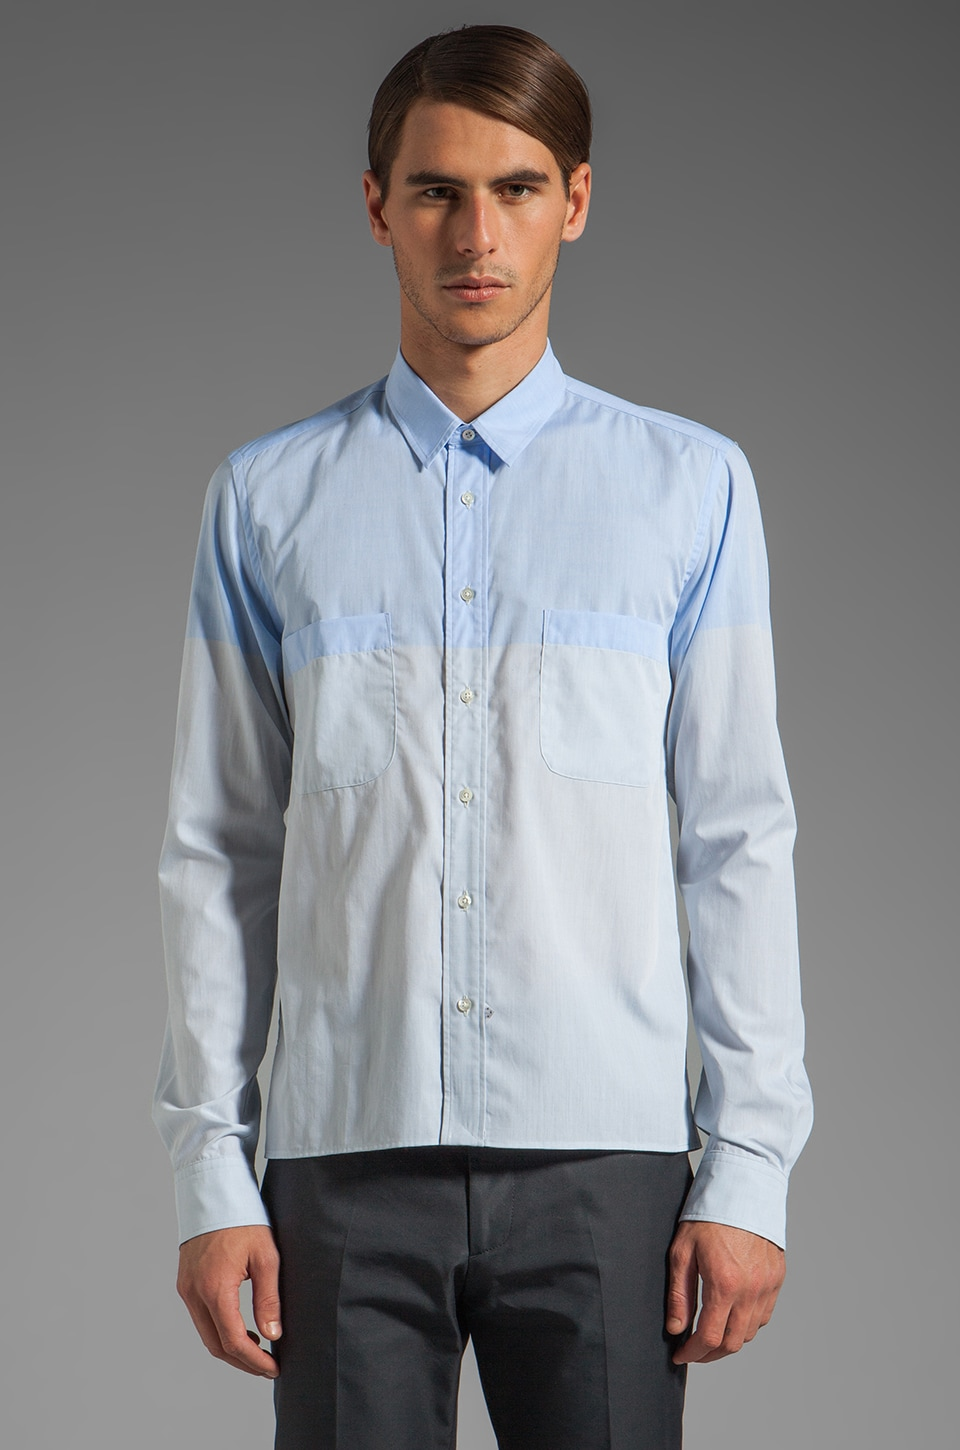 Sidian, Ersatz & Vanes Slim and Cropped Shirt w/ Pockets and Straight Hem in Sky Blue/Light Blue